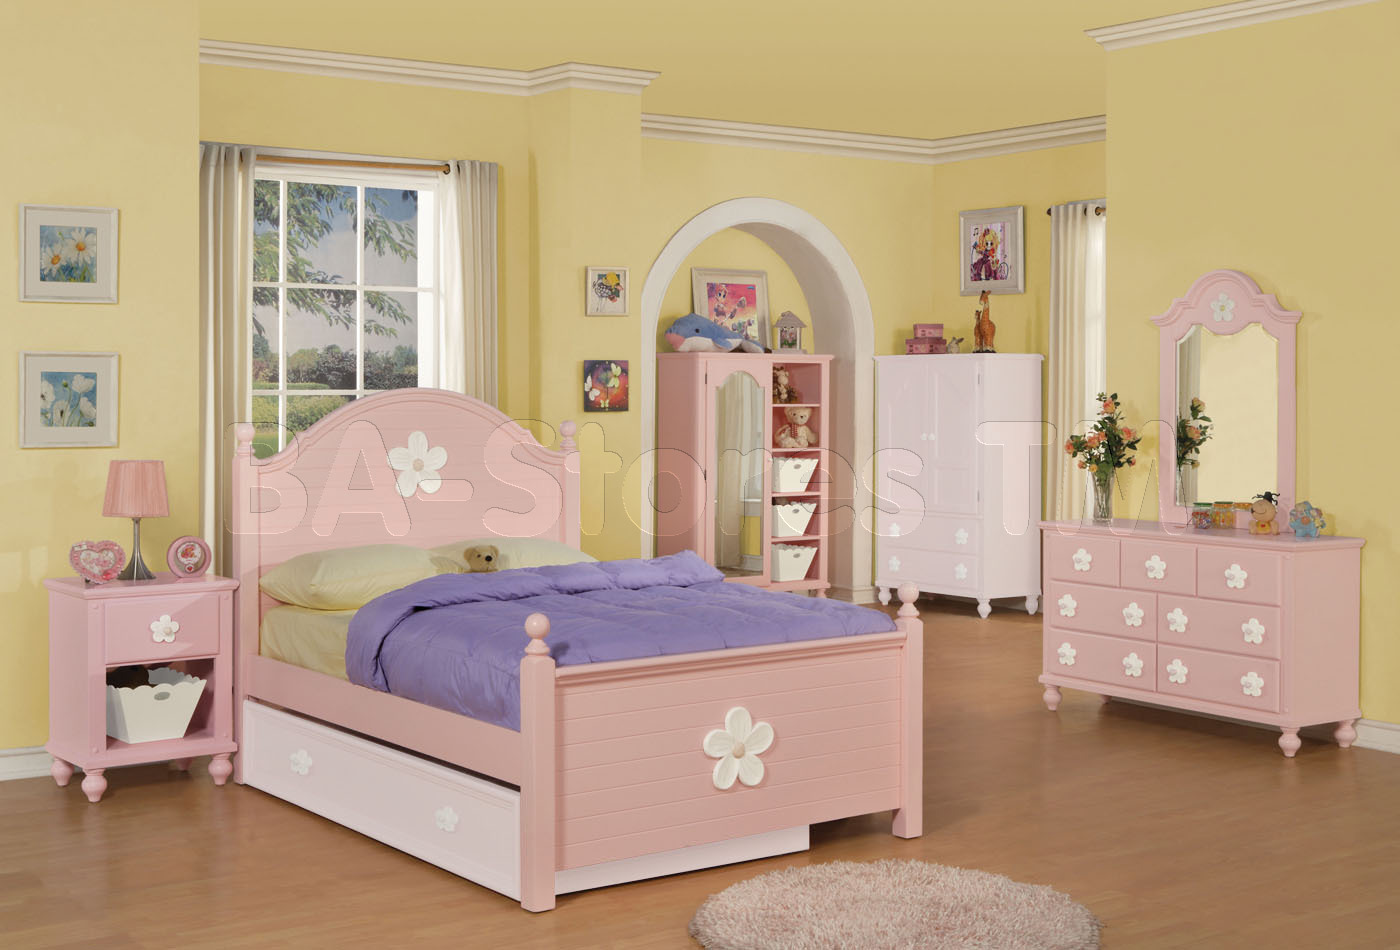 bedroom furniture sets for toddlers photo - 8